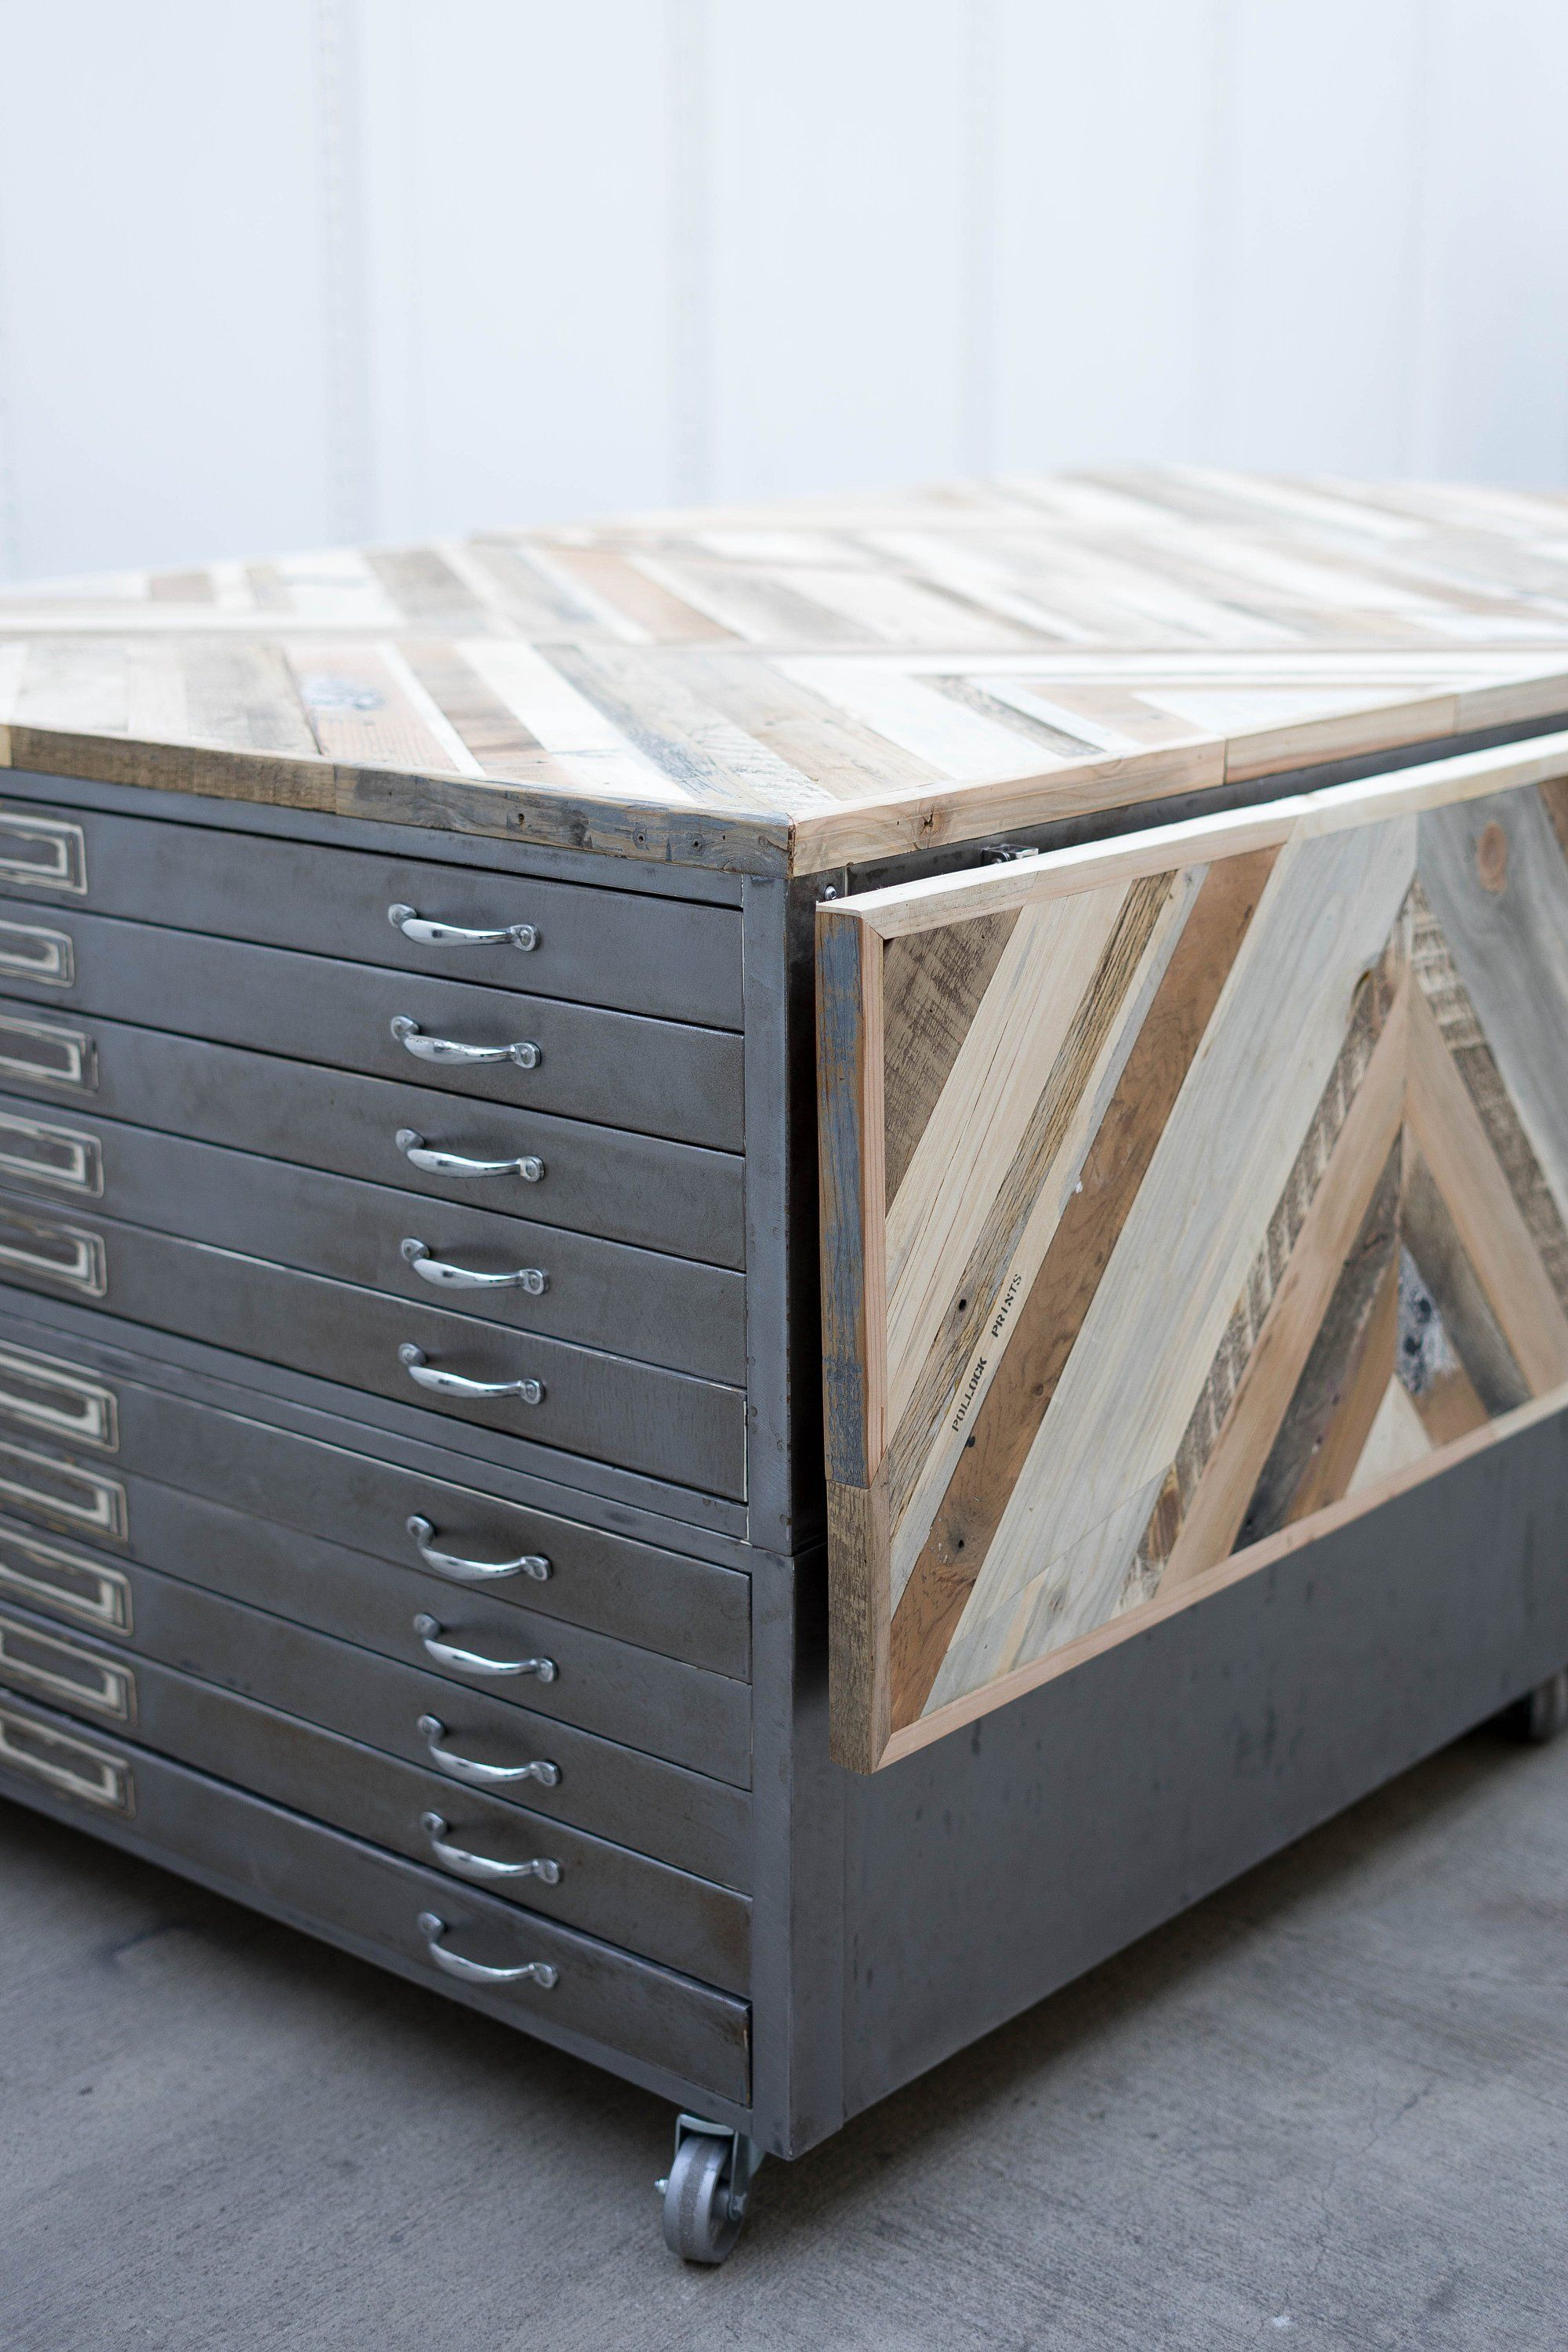 Flat File Coffee Table Industrial Coffee Table Chevron Coffee Table Flat Files Chevron Coffee Tables Diy Furniture Projects [ 3000 x 2000 Pixel ]